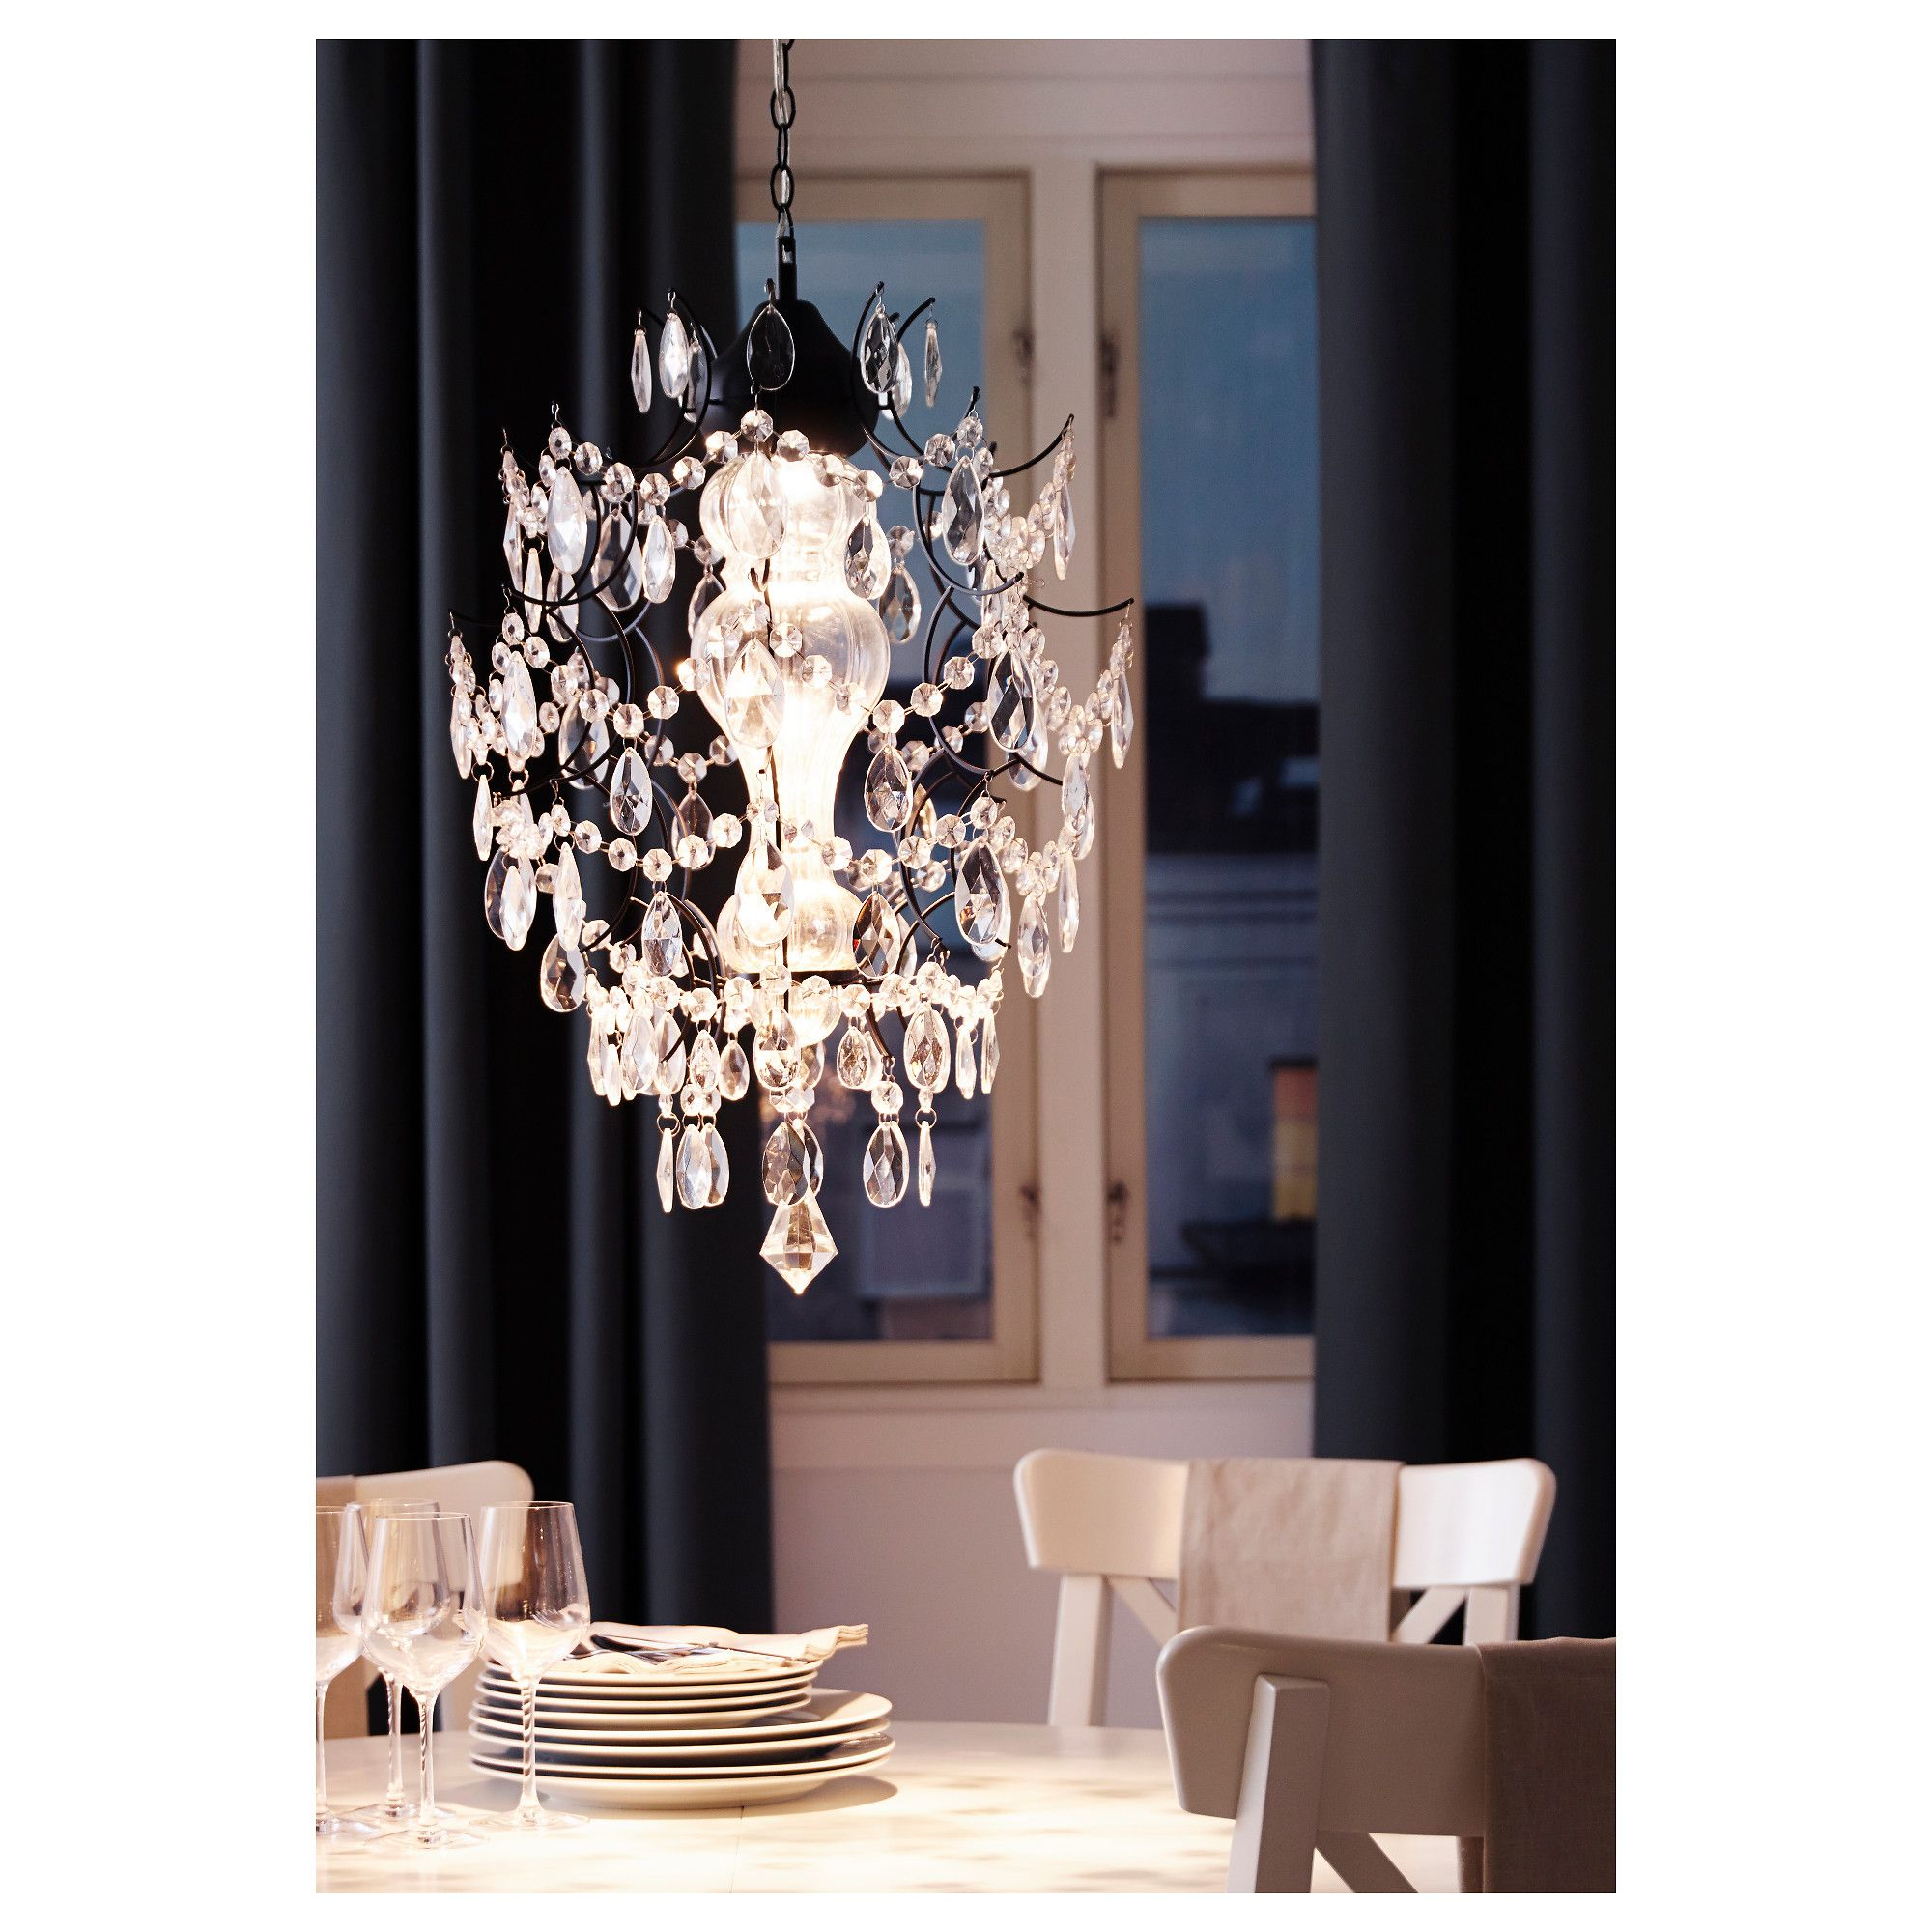 Rtofta chandelier chandeliers ceilings and walls ikea rtofta chandelier gives decorative patterns on the ceiling and on the wall aloadofball Choice Image